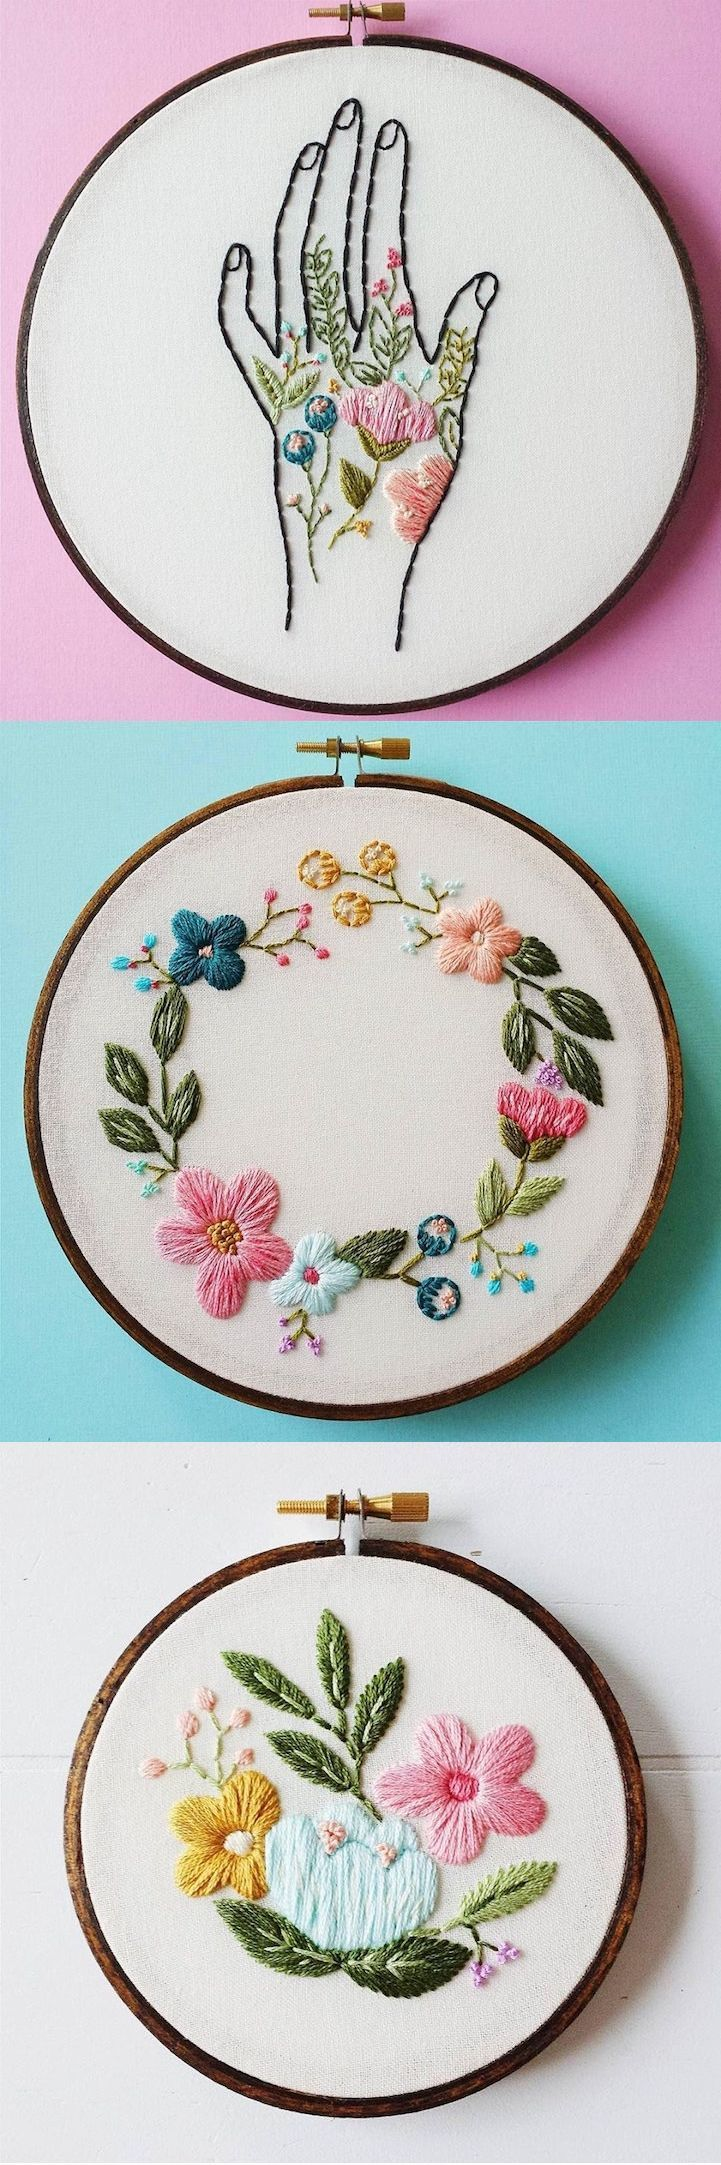 Embroidery by Cinder & Honey // on Etsy // craft // hoop art